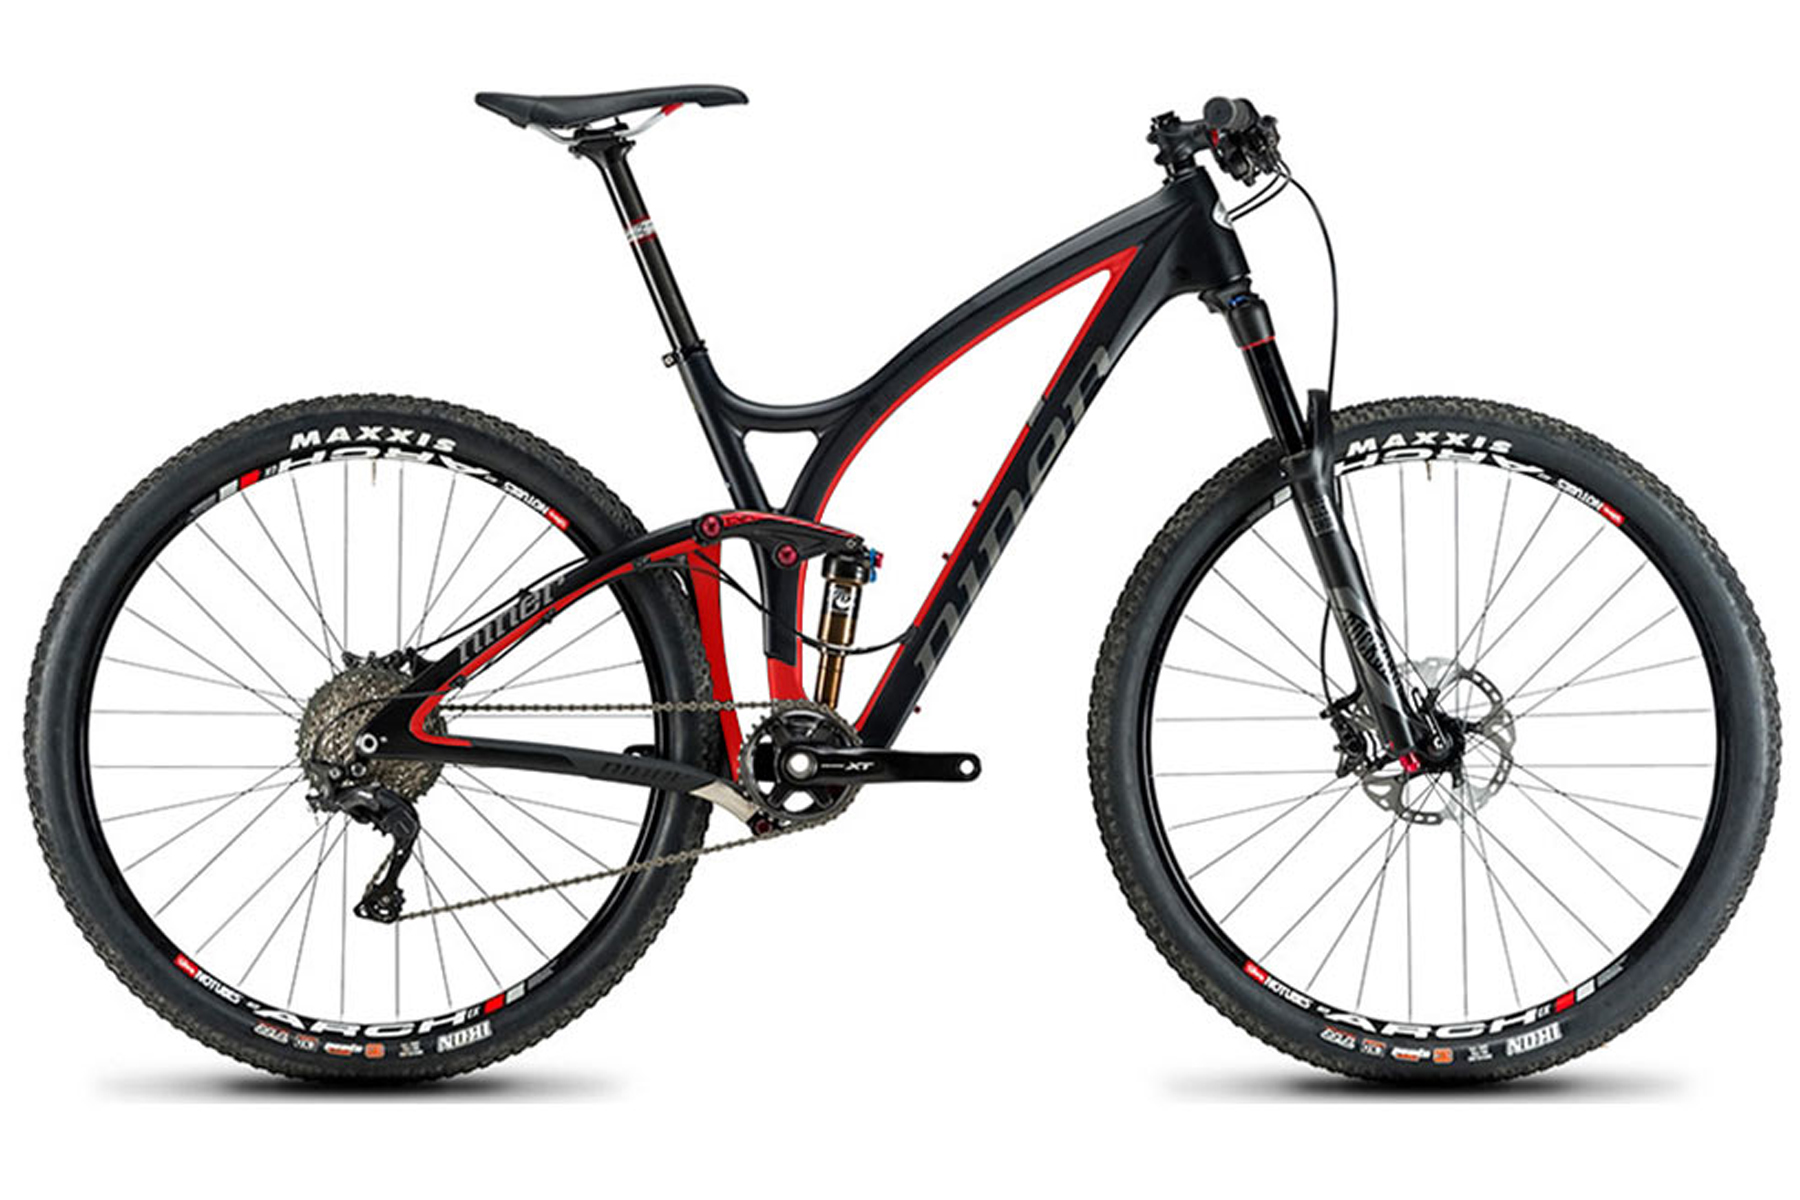 Niner Closeout Bikes   Deals! MSRP   5600.00 USD Cambria sale price  Save  up to 41% Off or  2250 Off Click here to purchase 690f9b3bd